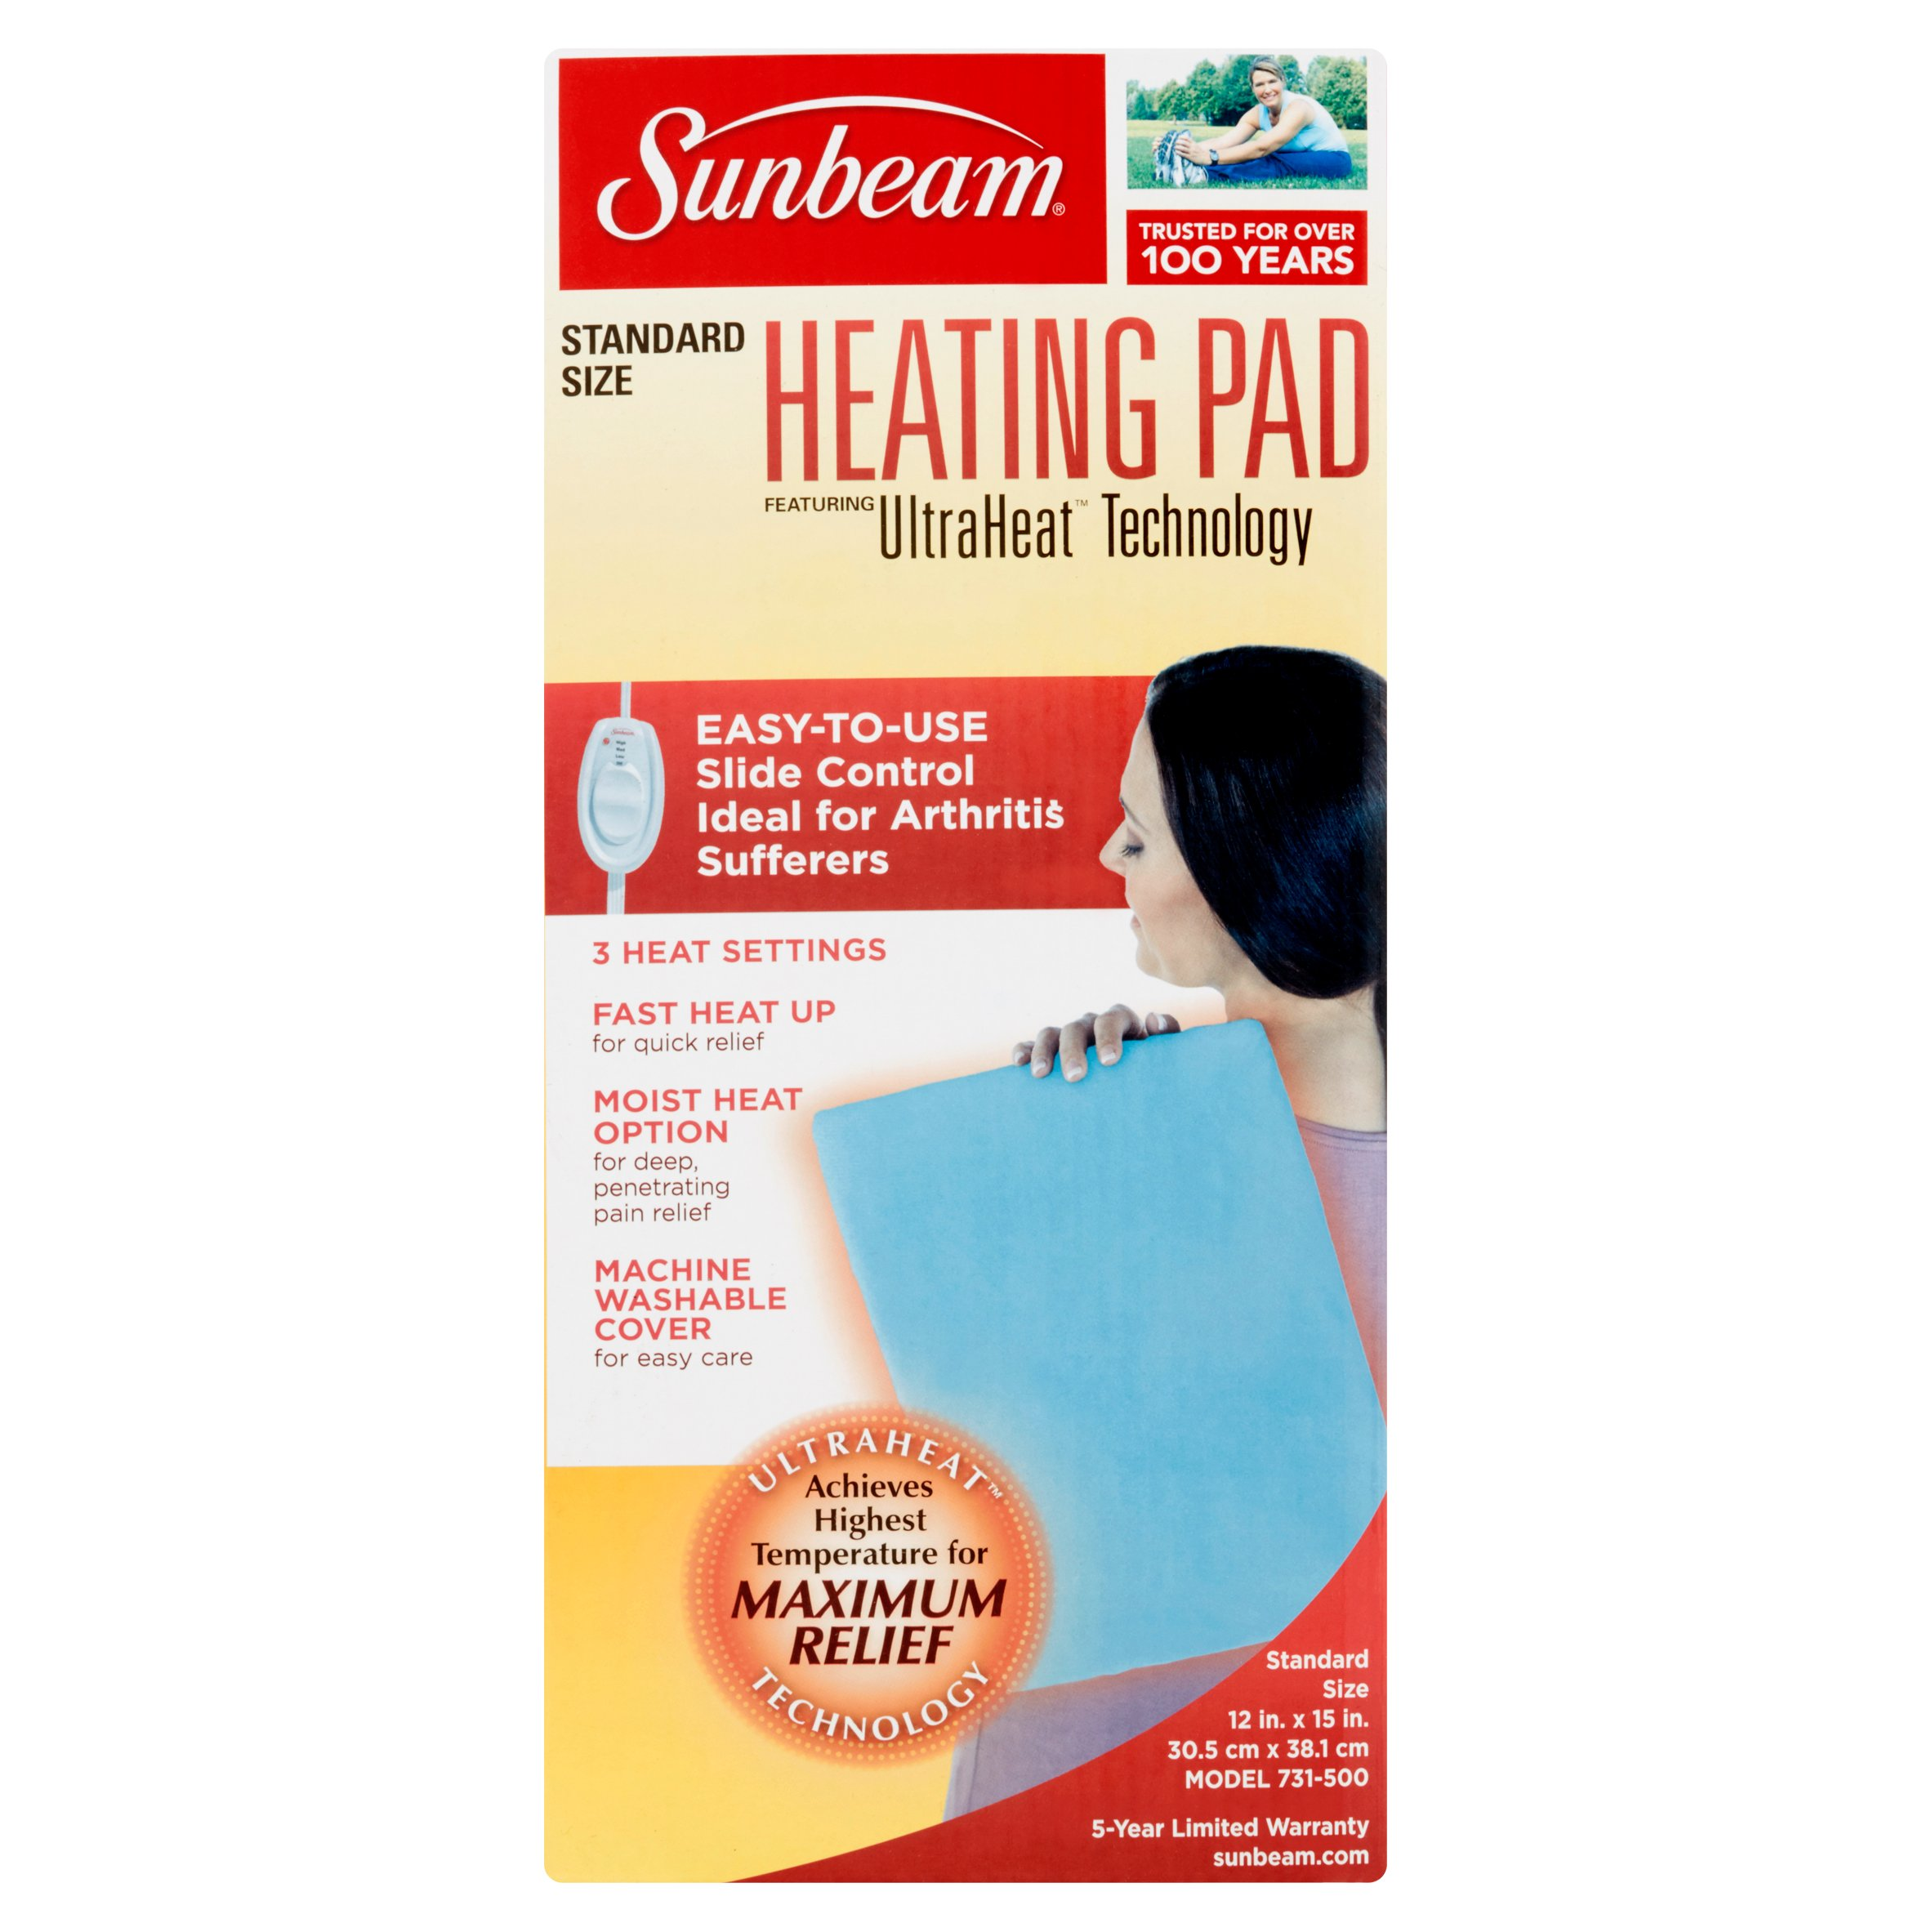 Sunbeam Heating Pad